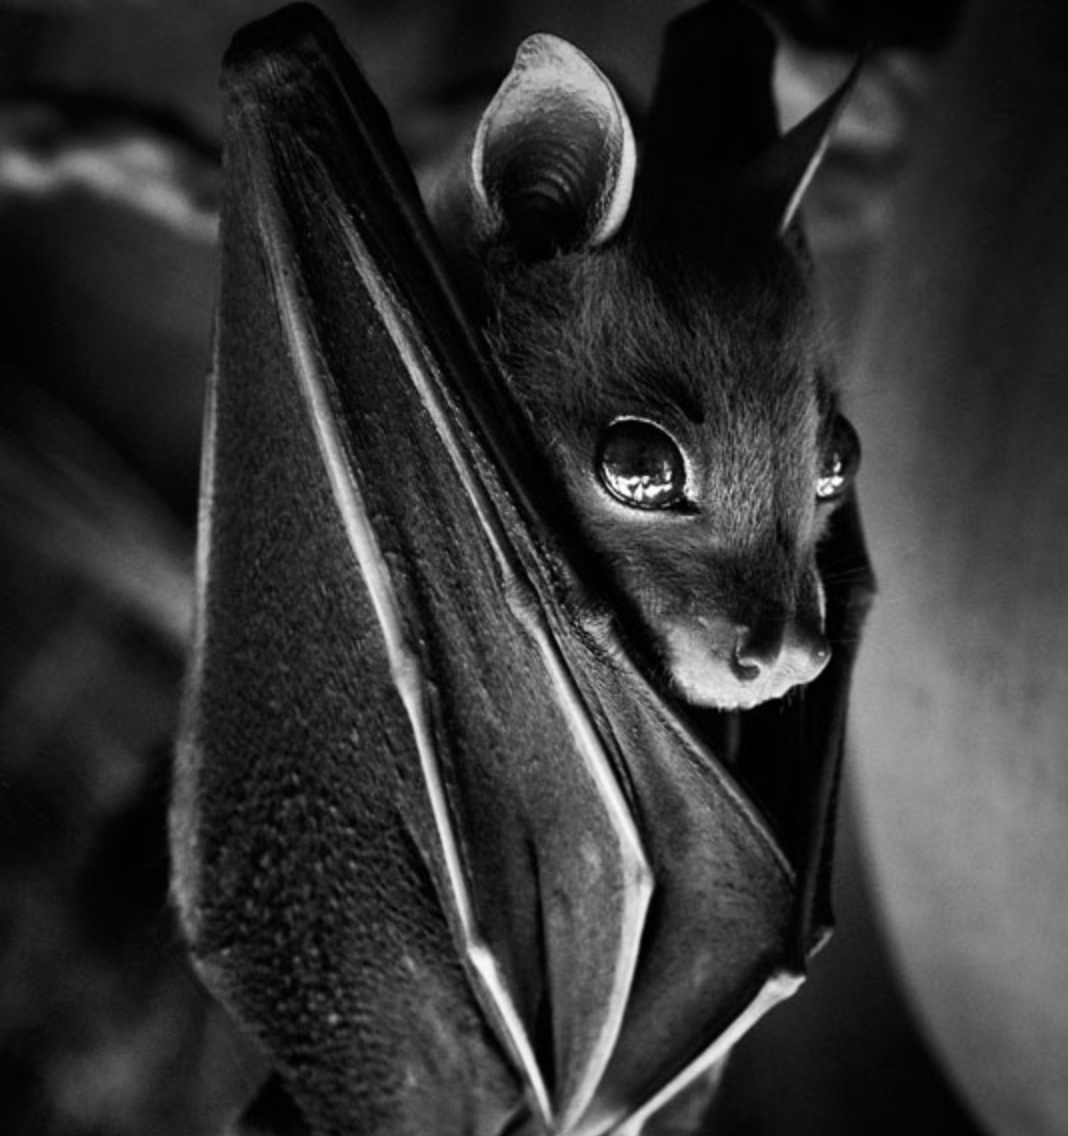 Bats Comprise One Fifth of Mammals on the Planet